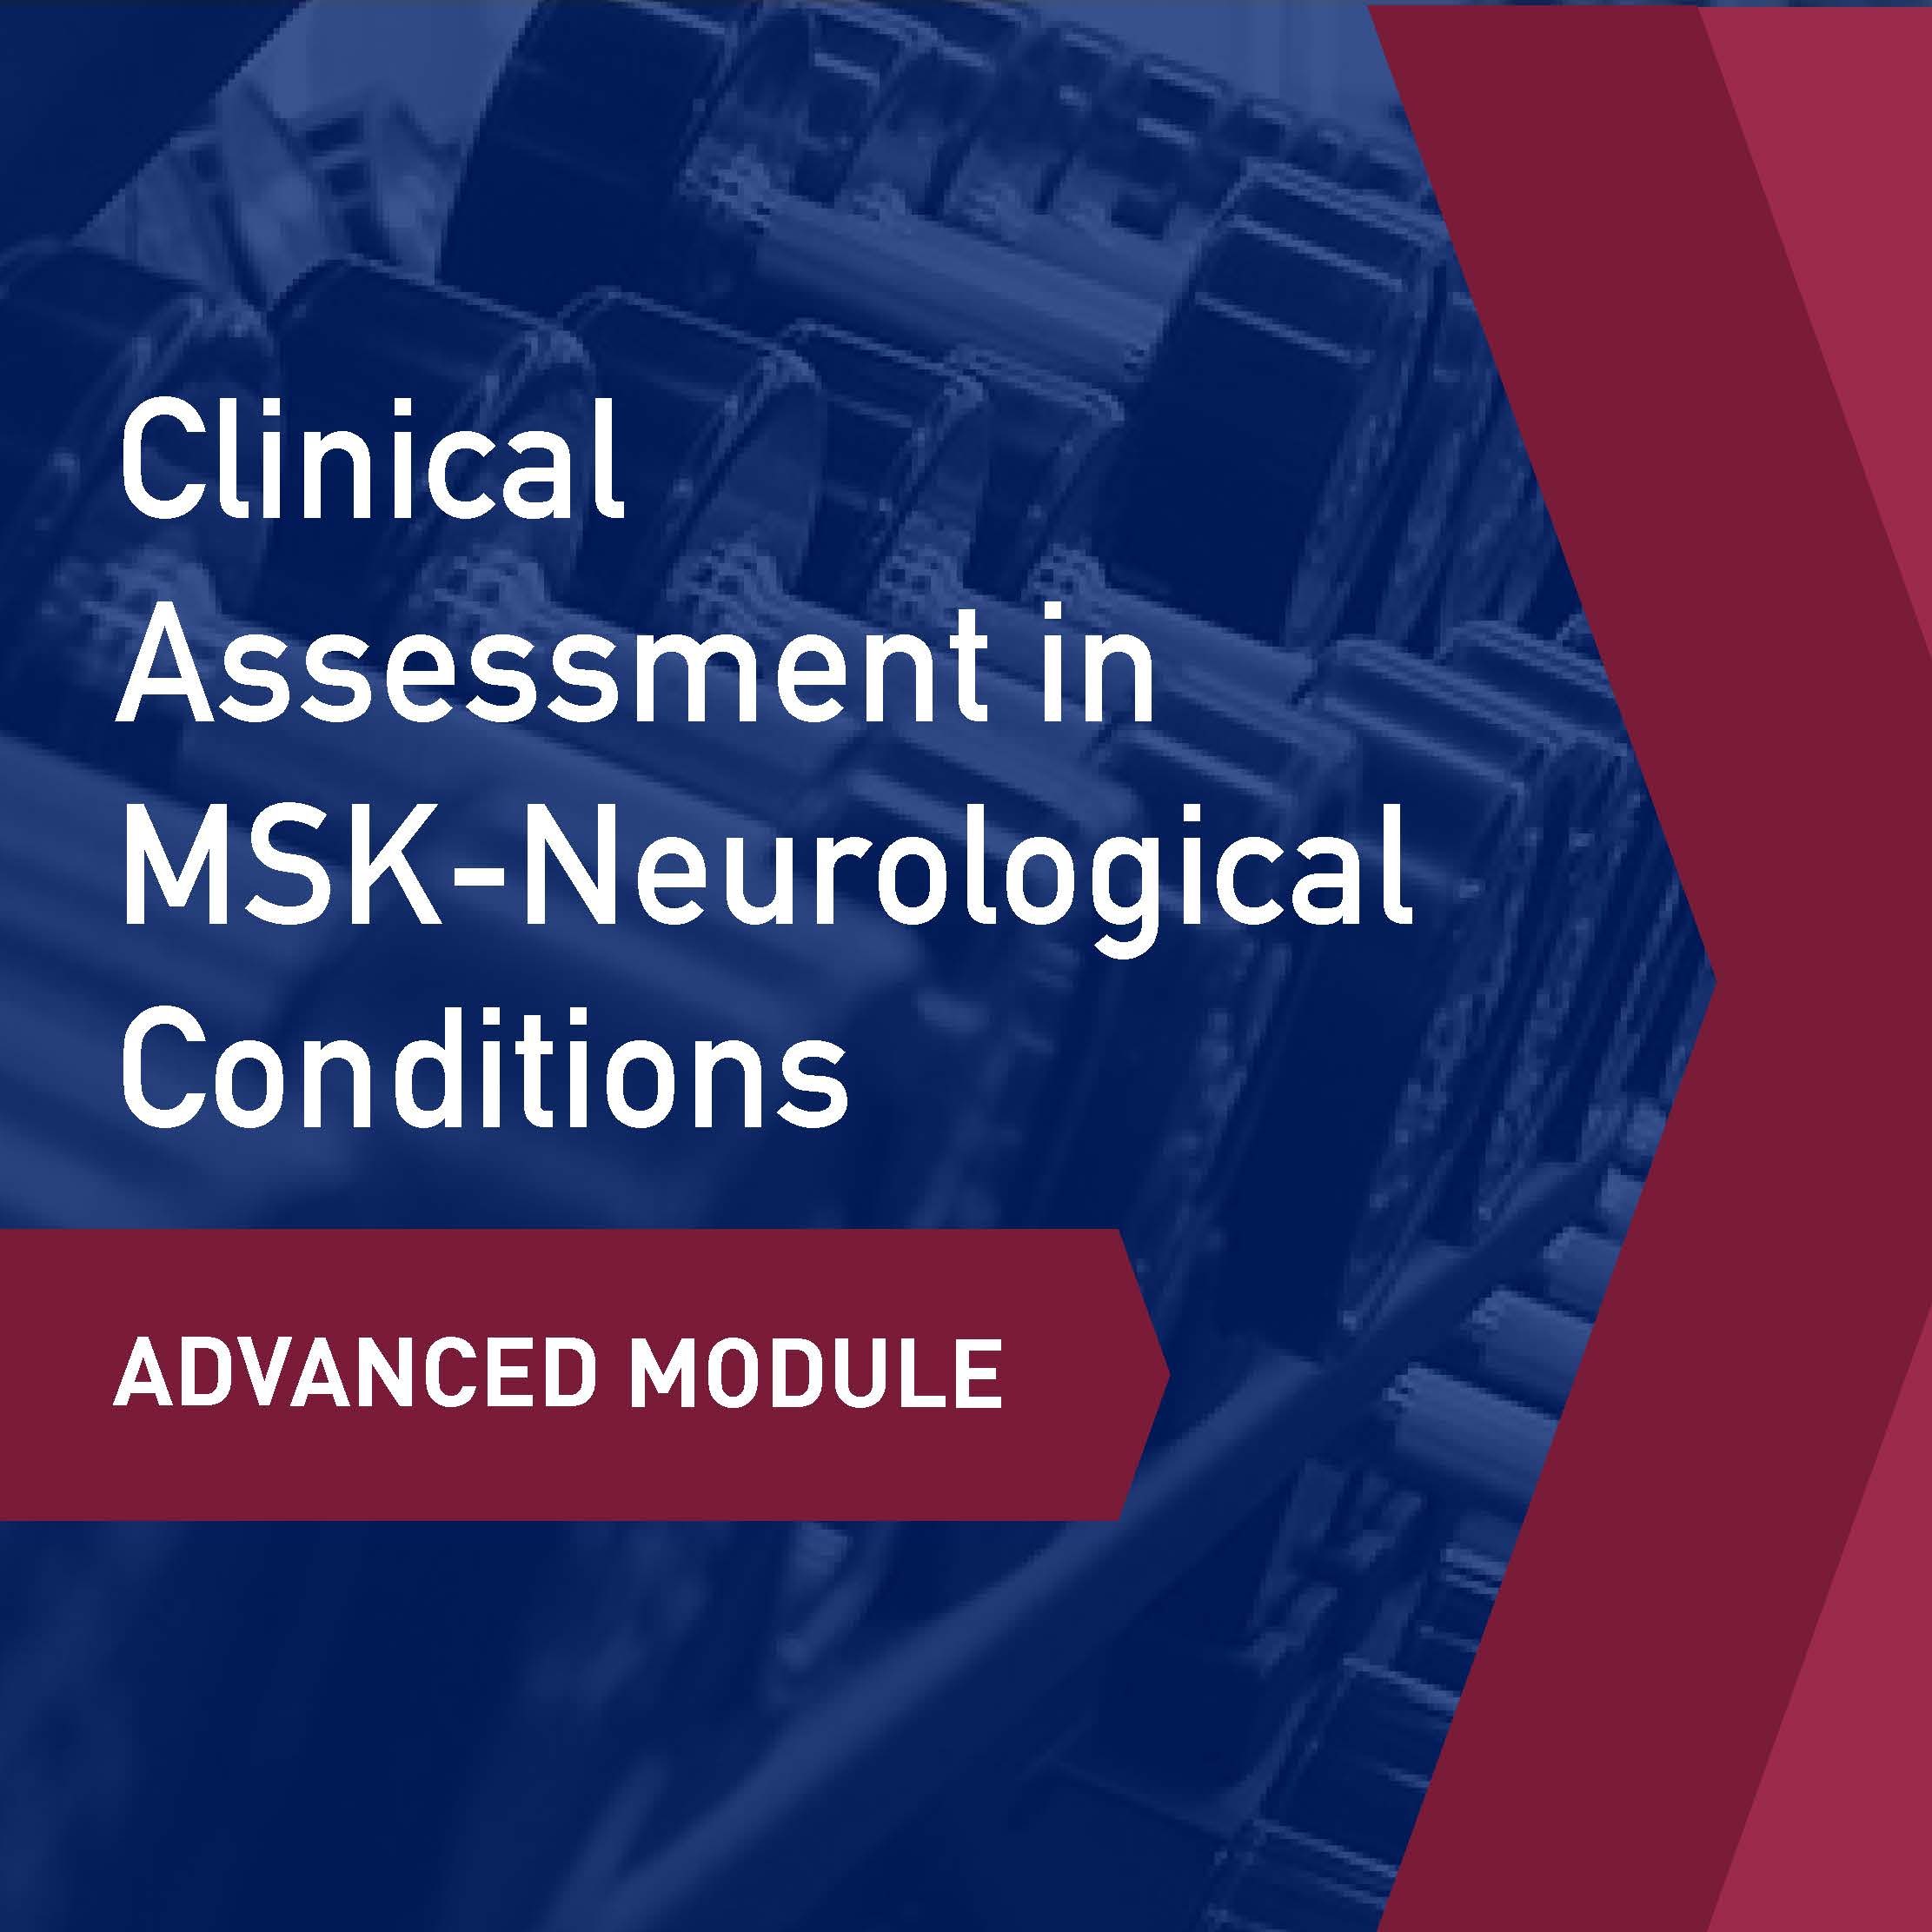 Advanced Learning Module: Clinical Assessment in MSK-Neurological Conditions